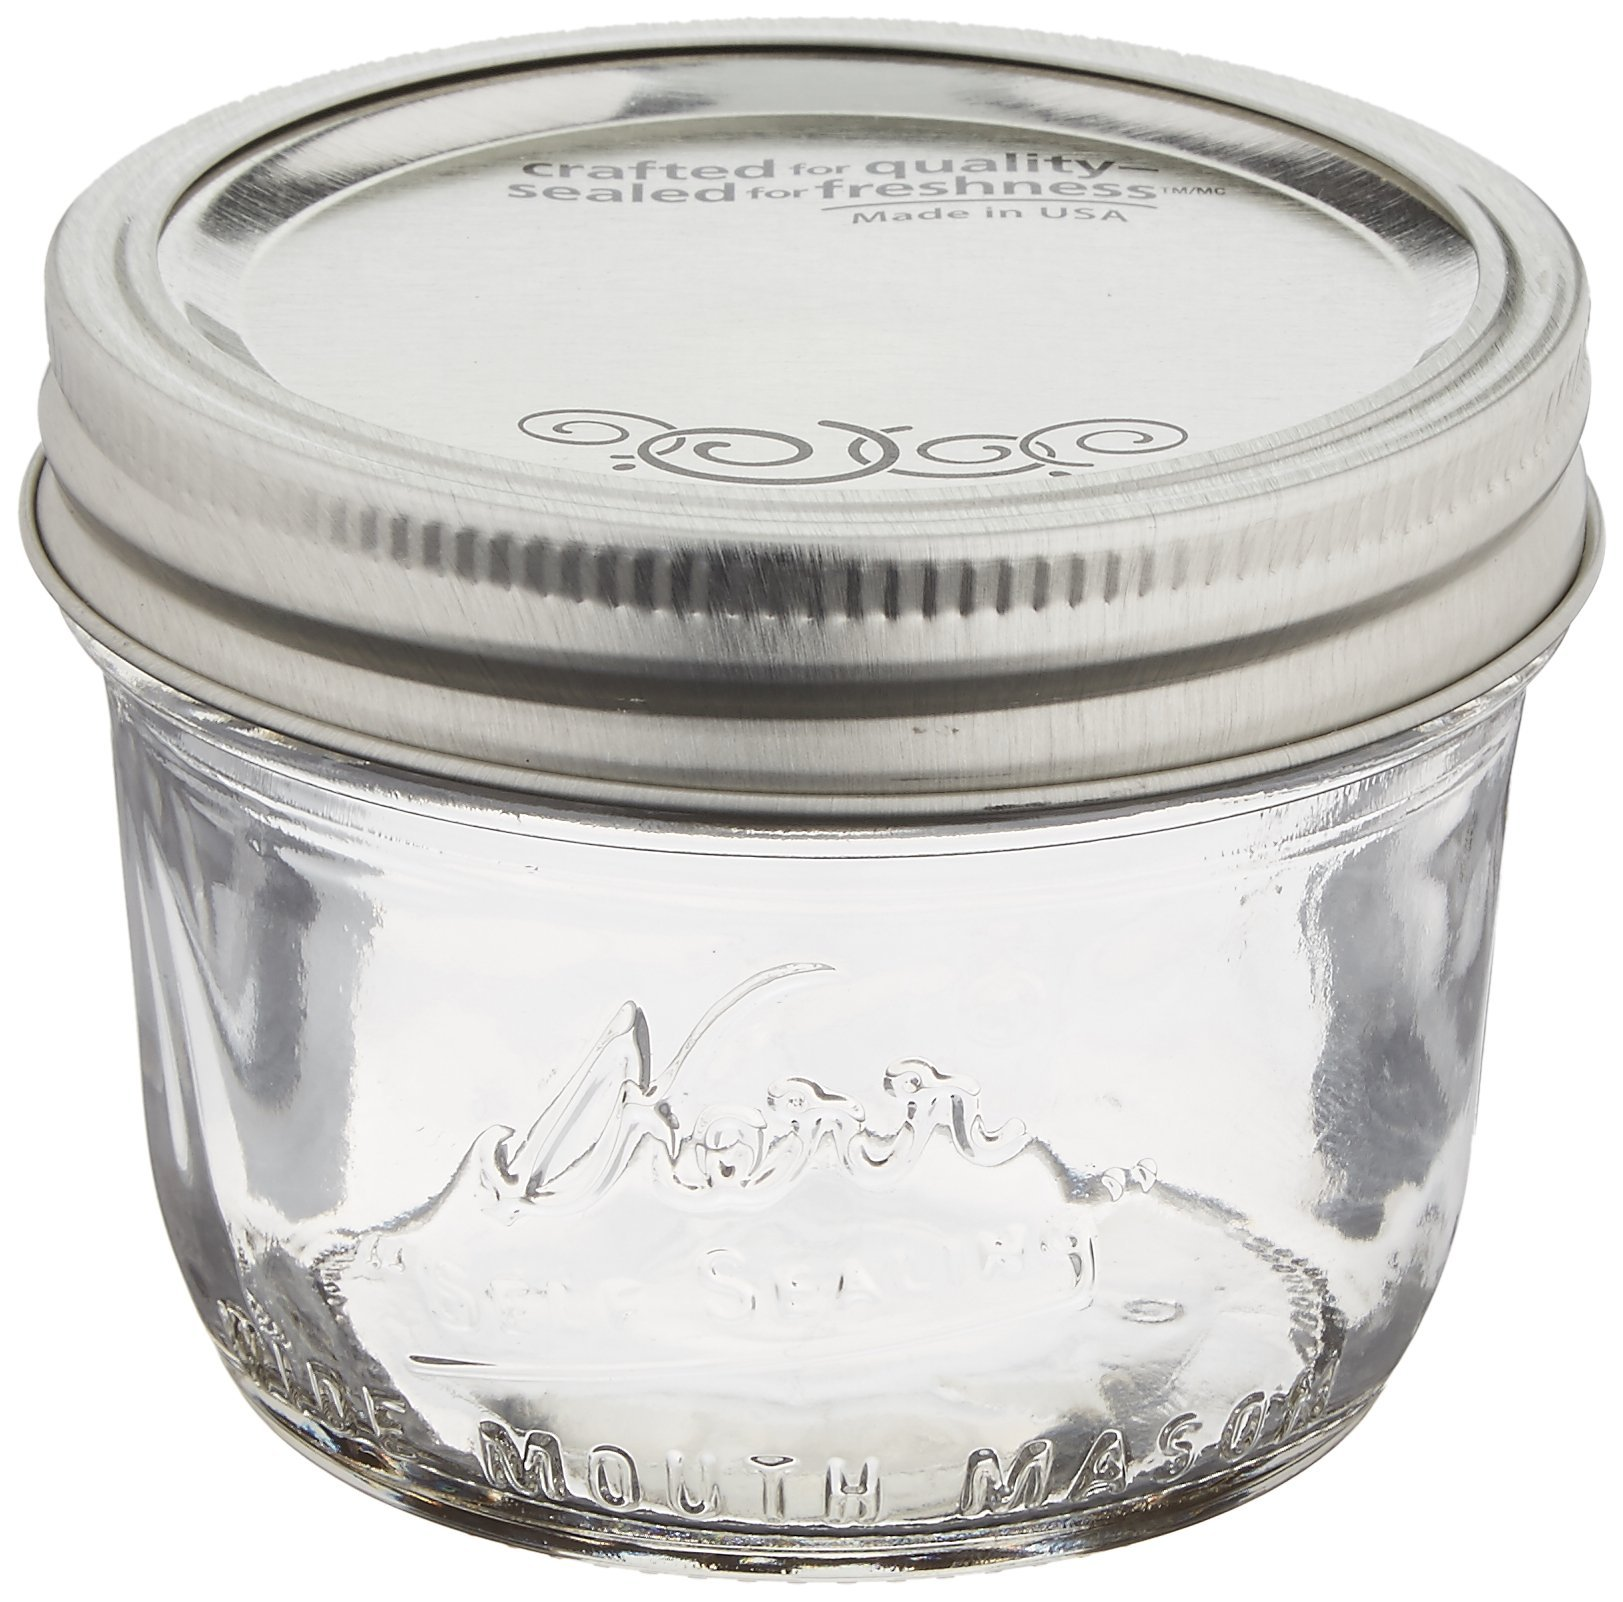 Jarden Kerr Wide Mouth Half-Pint Glass Mason Jars 8-Ounces with Lids and Bands 12-Count per Case (1-Case)